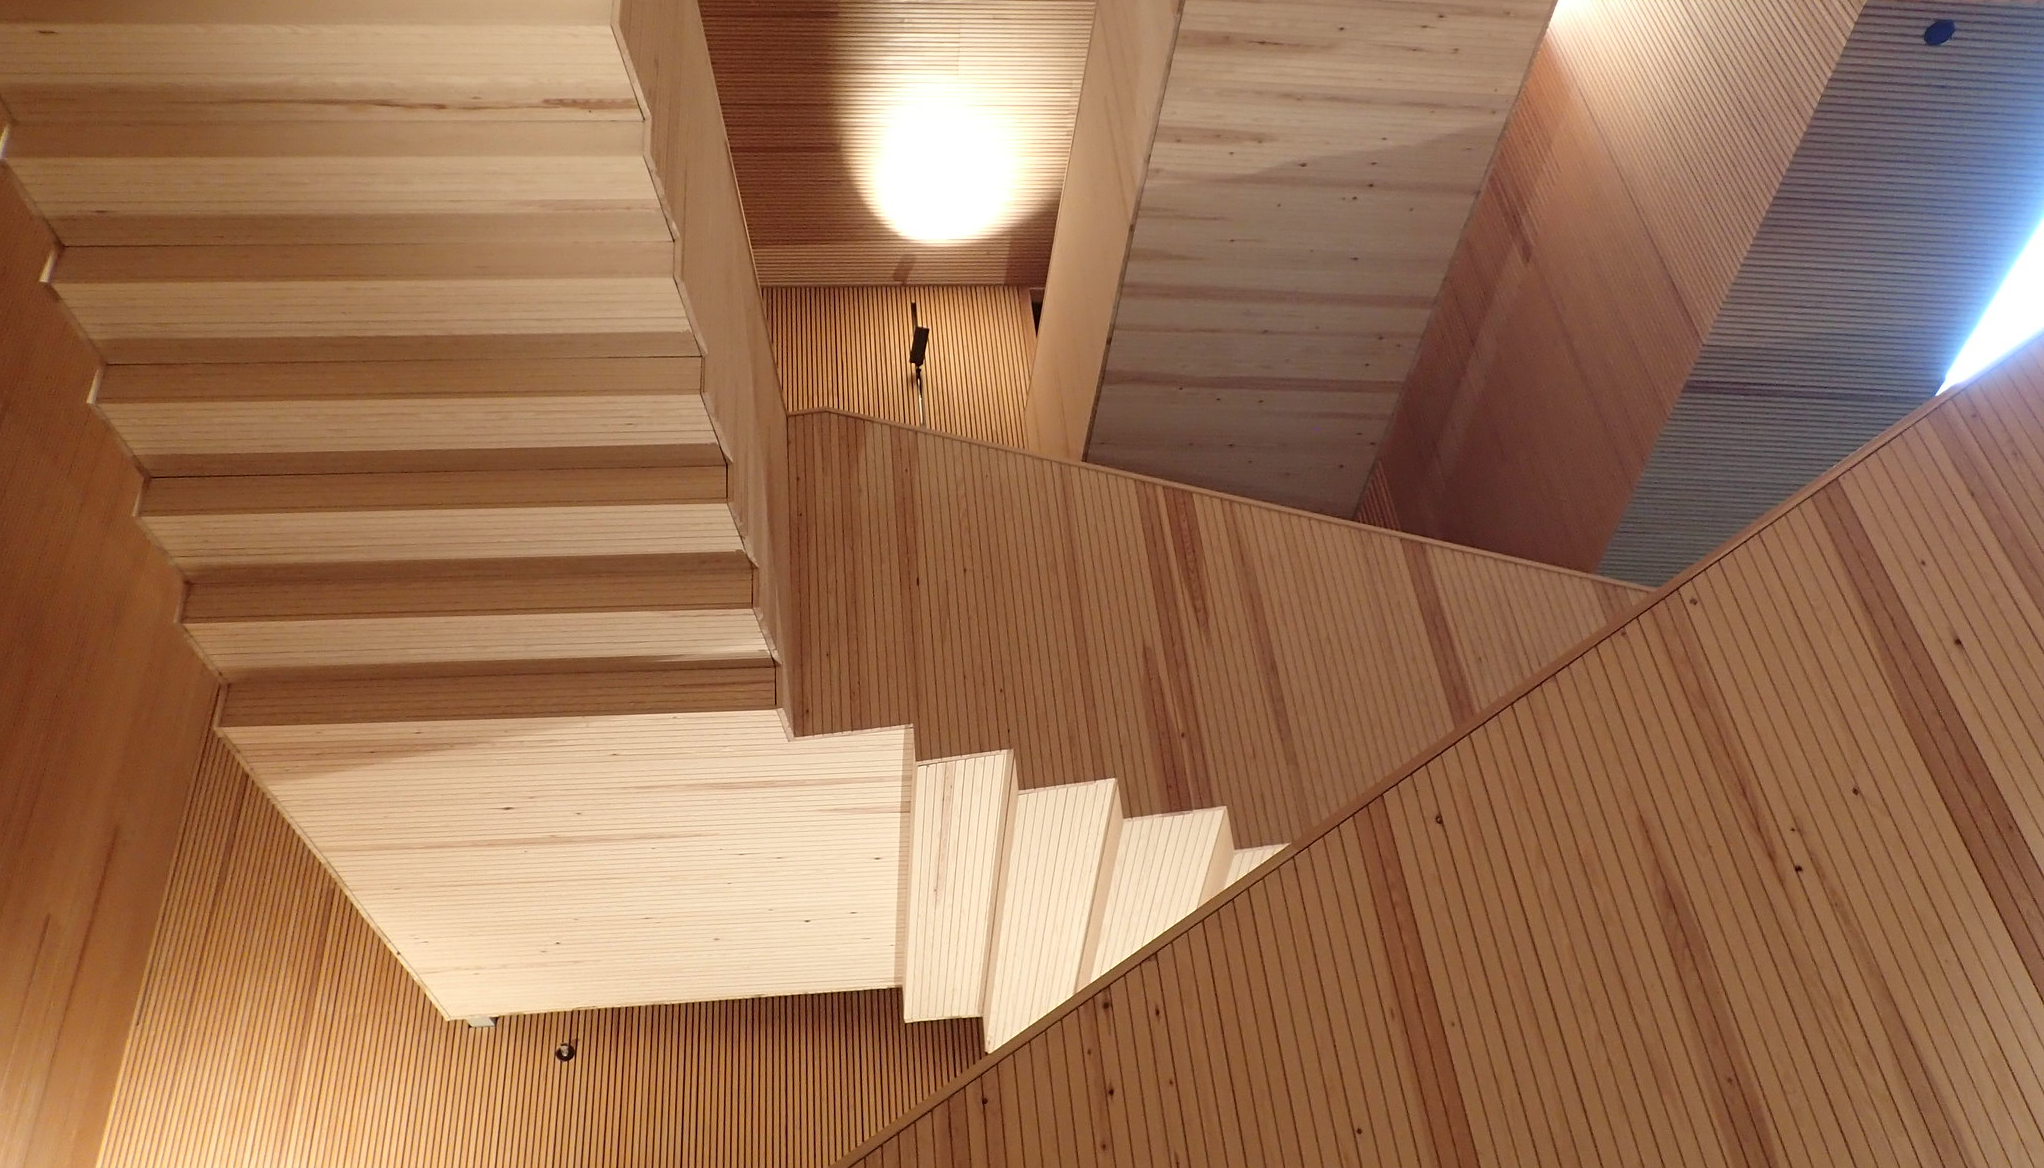 Photo of the Think Corner staircase looking upwards - it looks like a flight of stairs upside down!